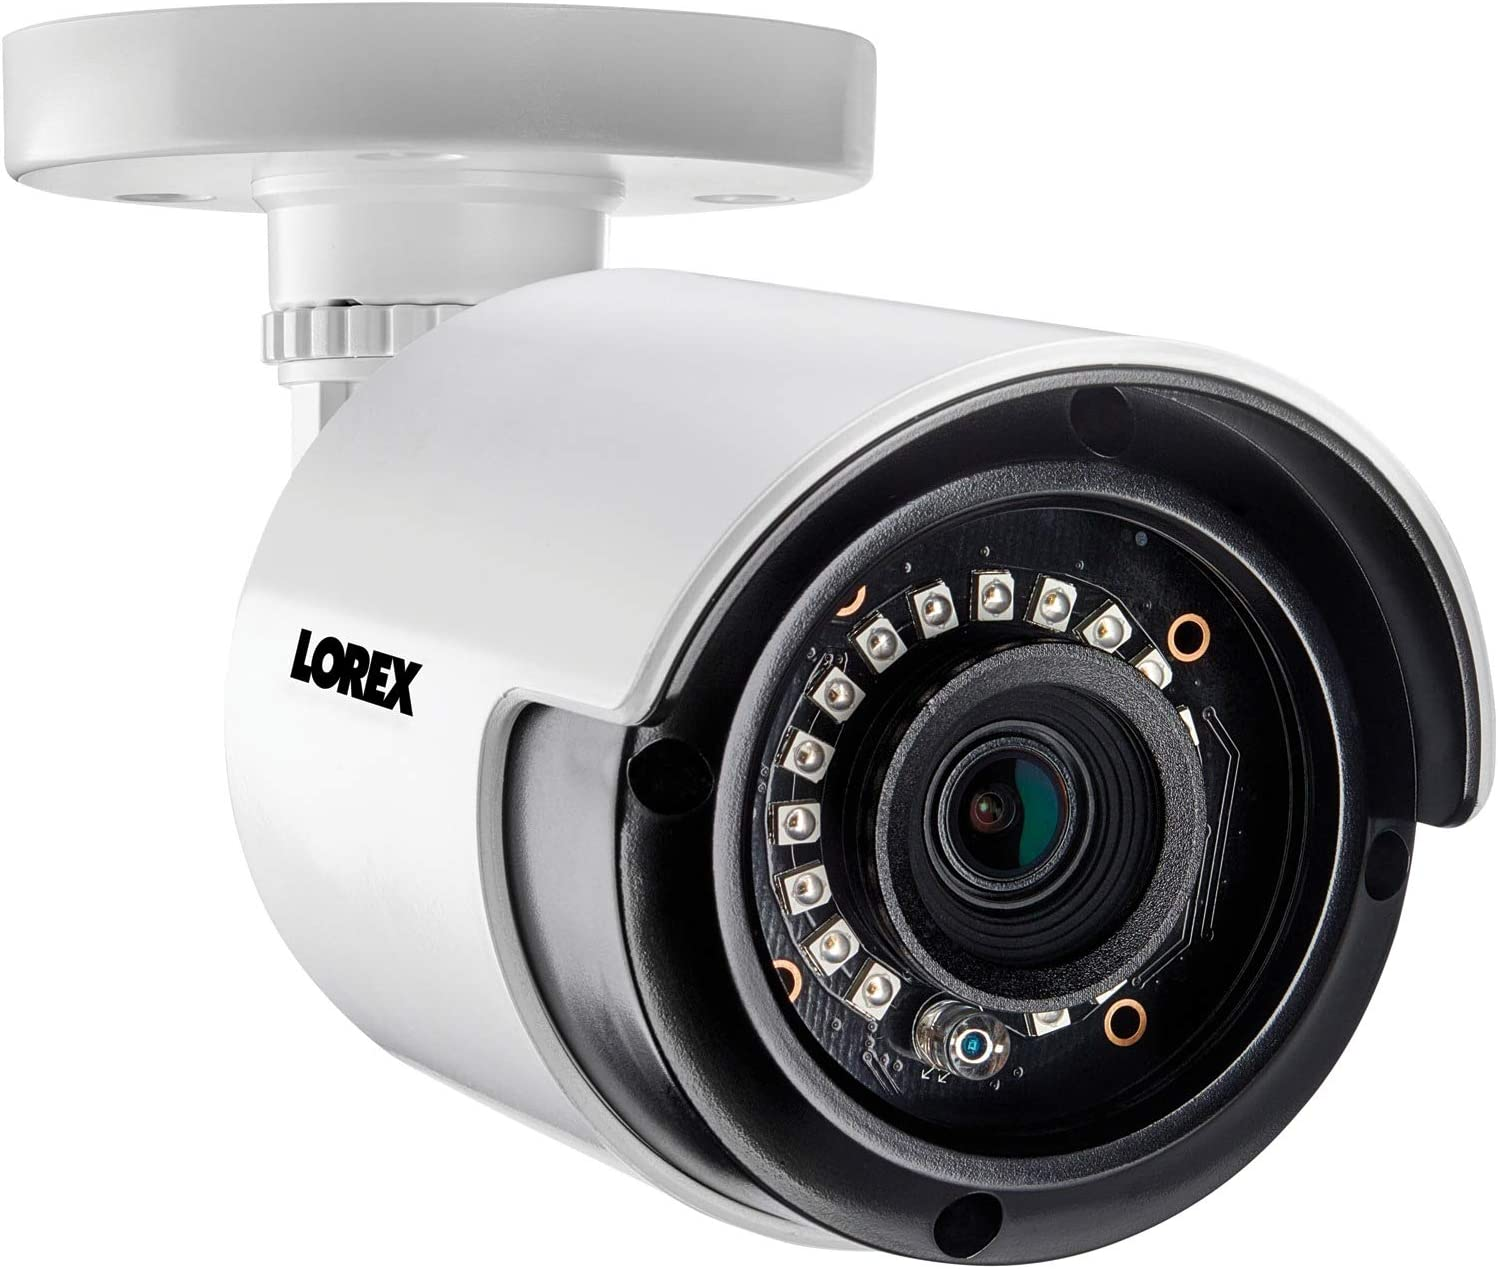 Lorex LORLAB223T 1080p Full Hd Analog Indoor/Outdoor Bullet Security Camera, White